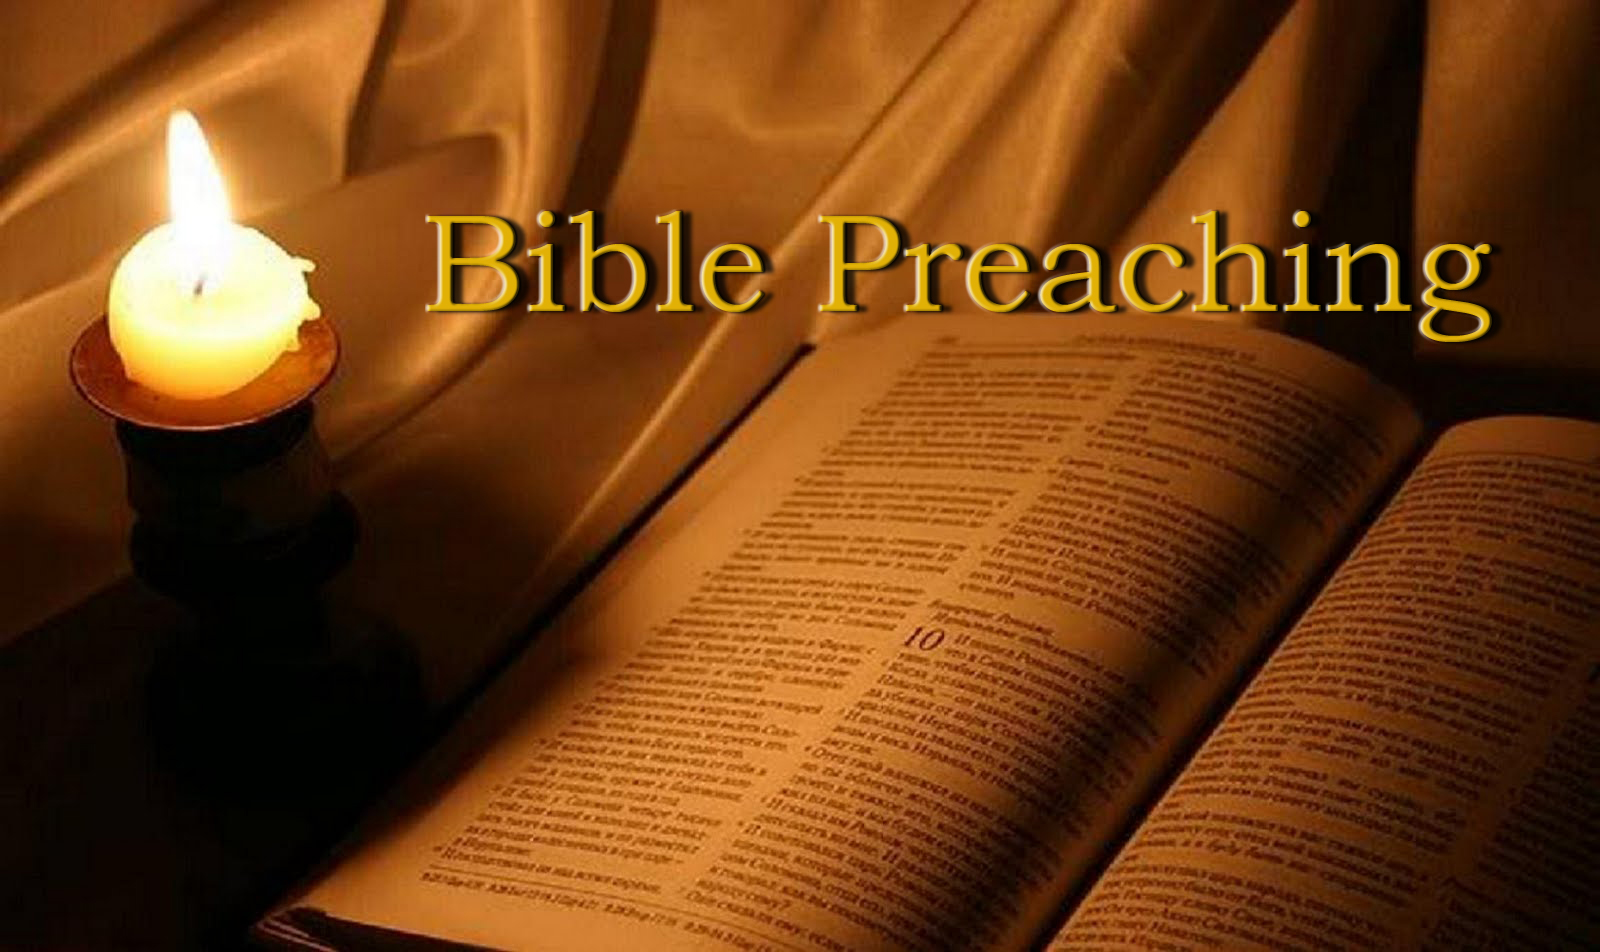 Bible-preaching-banner-small3